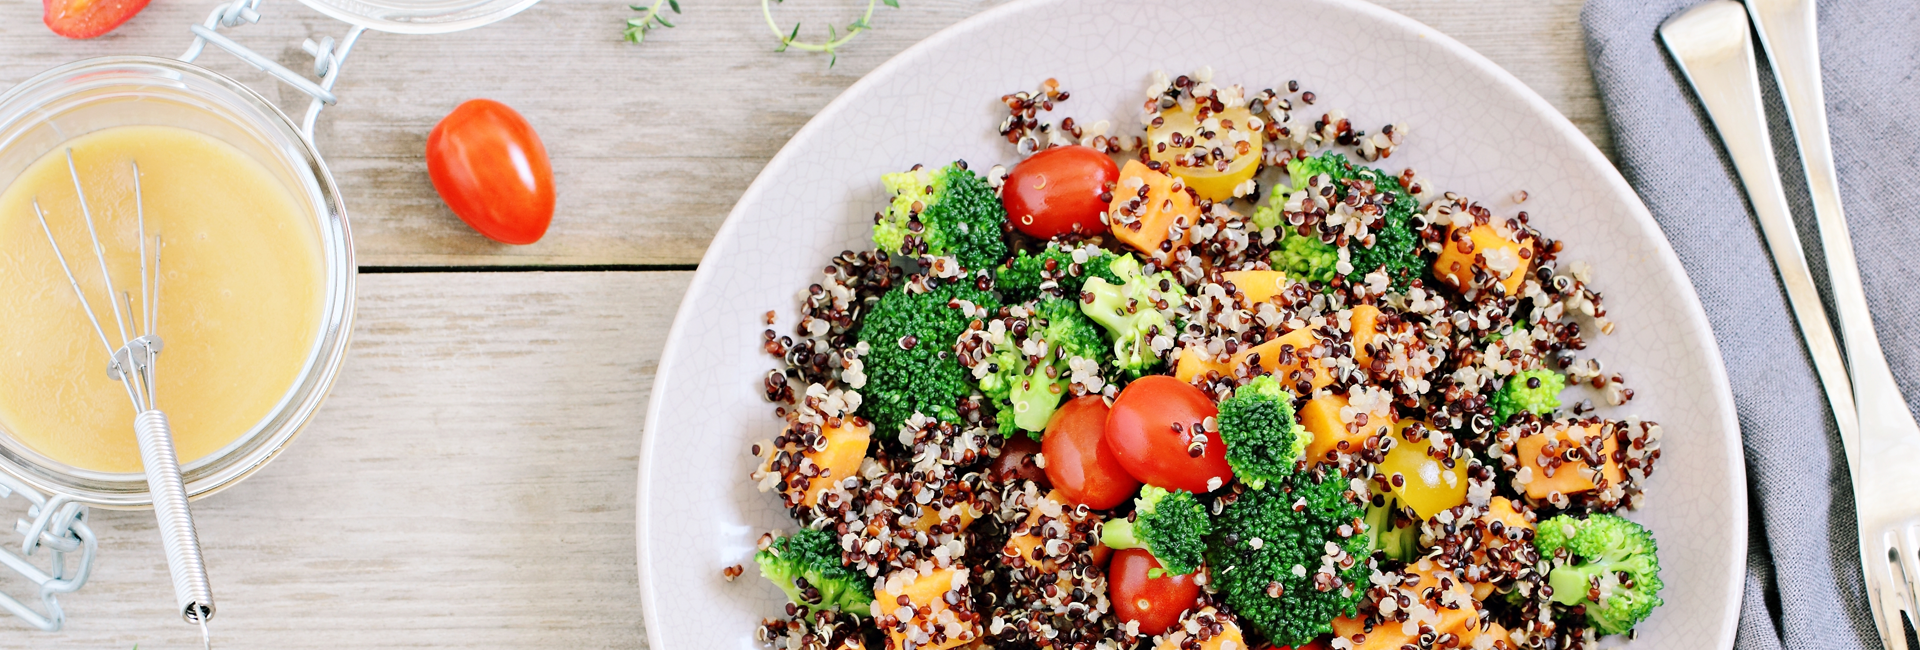 A vegetarian's guide to healthy living